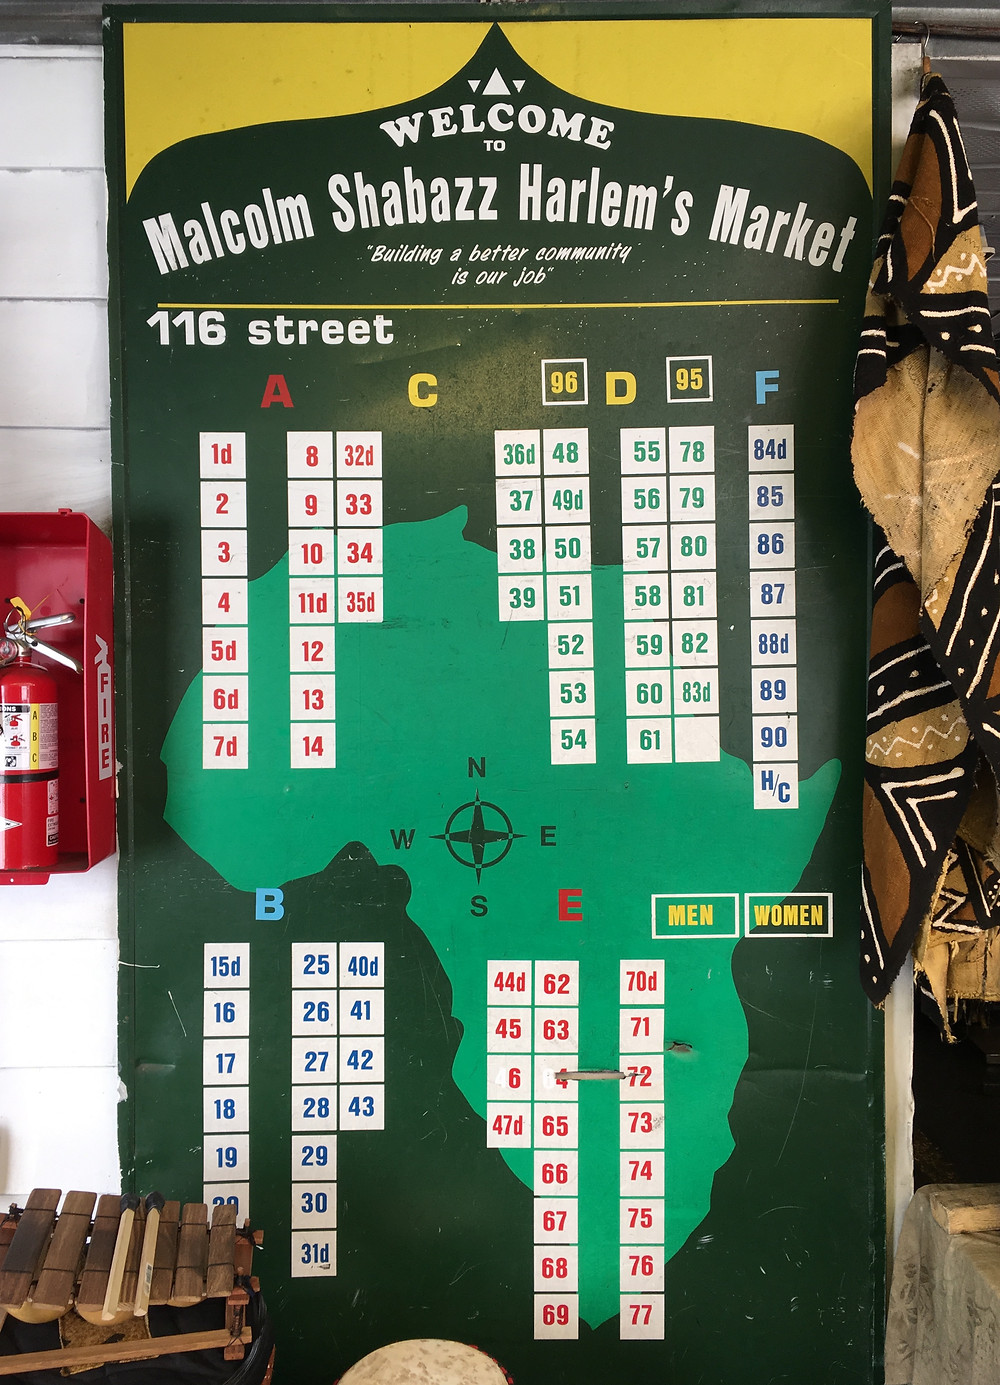 The map of booths at Malcolm Shabazz Harlem Market